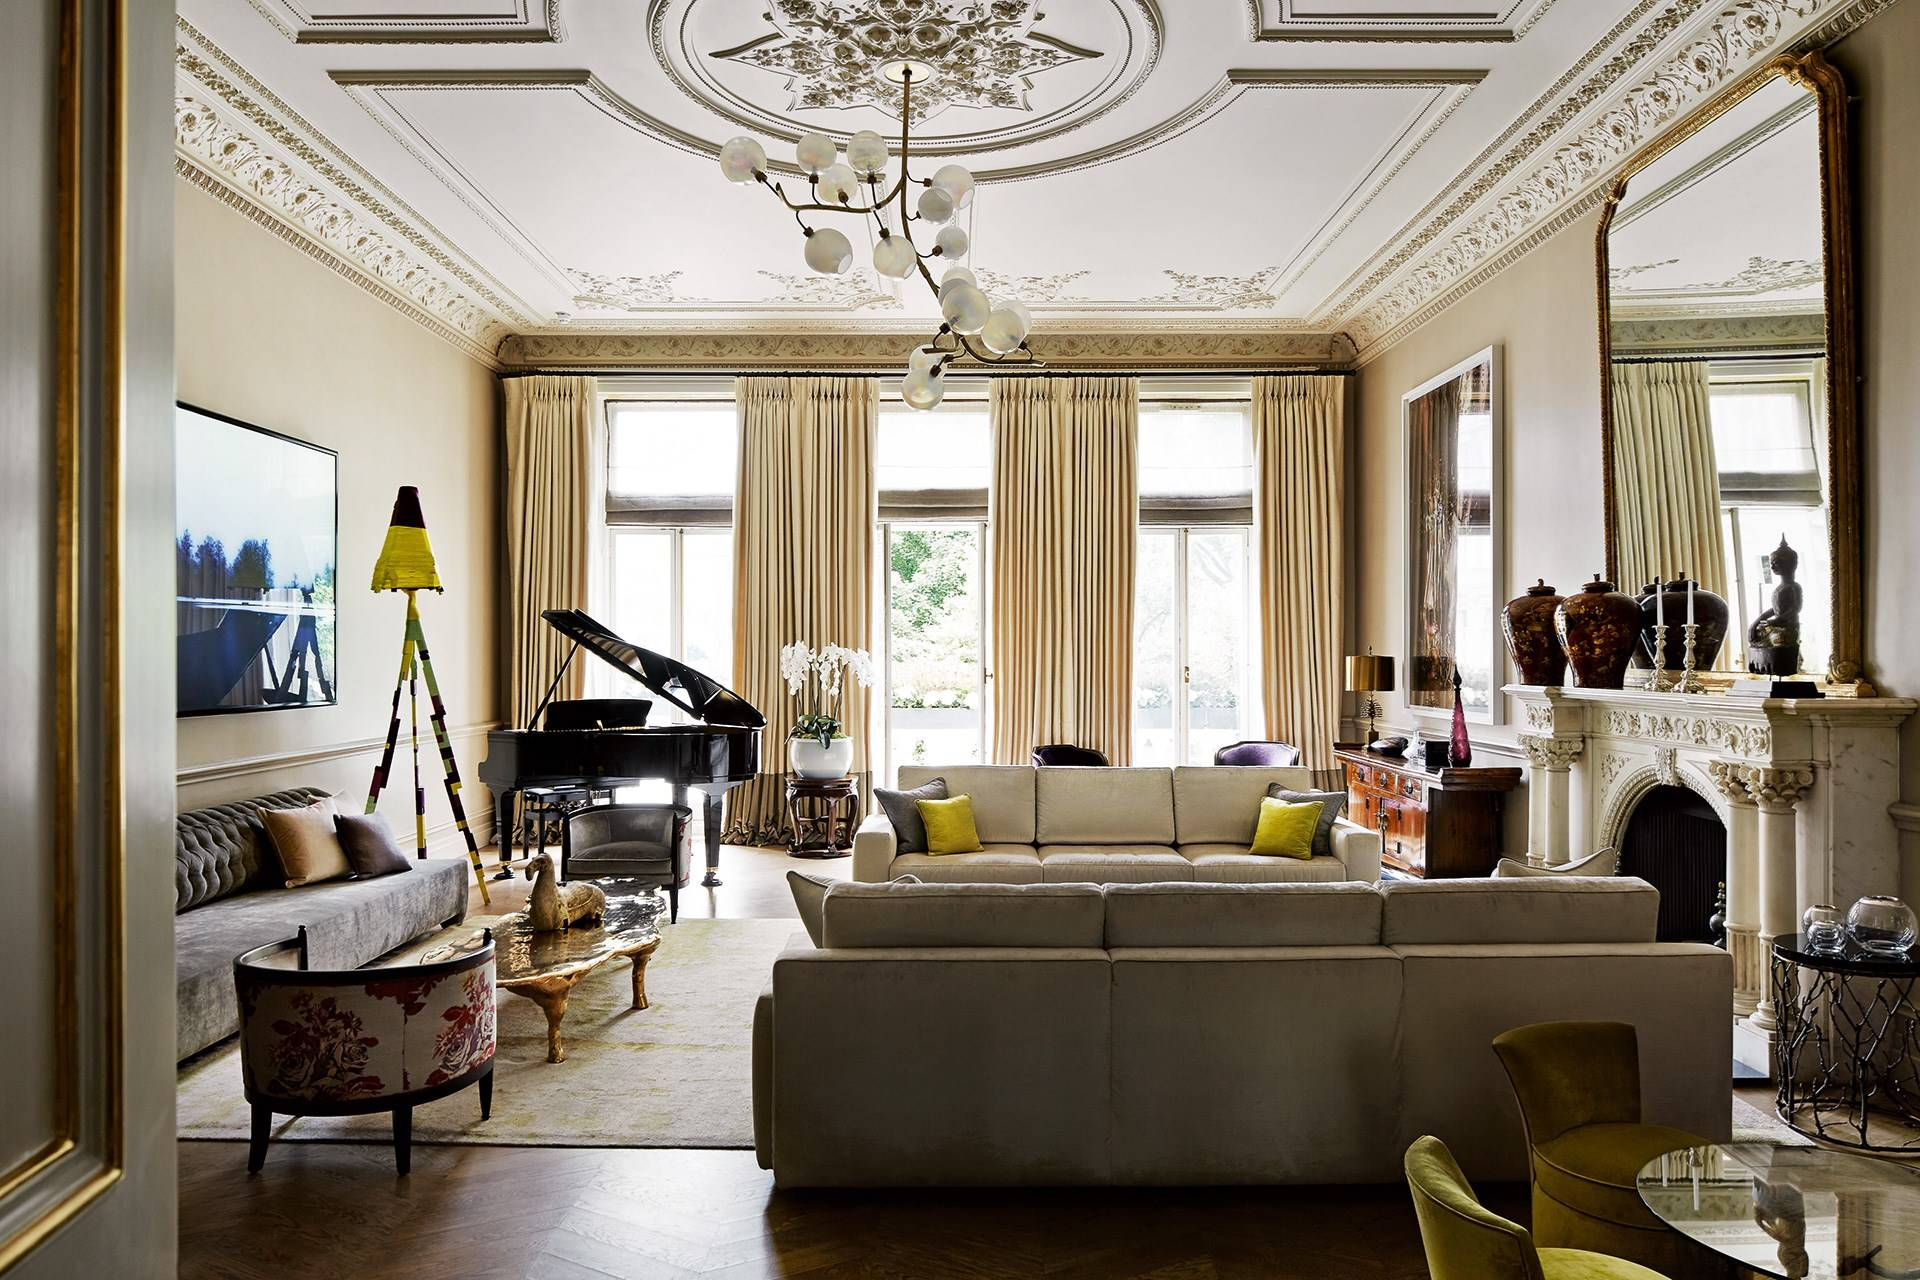 Old & New - Living Room Ideas, Furniture & Designs - Decorating Ideas | House & Garden